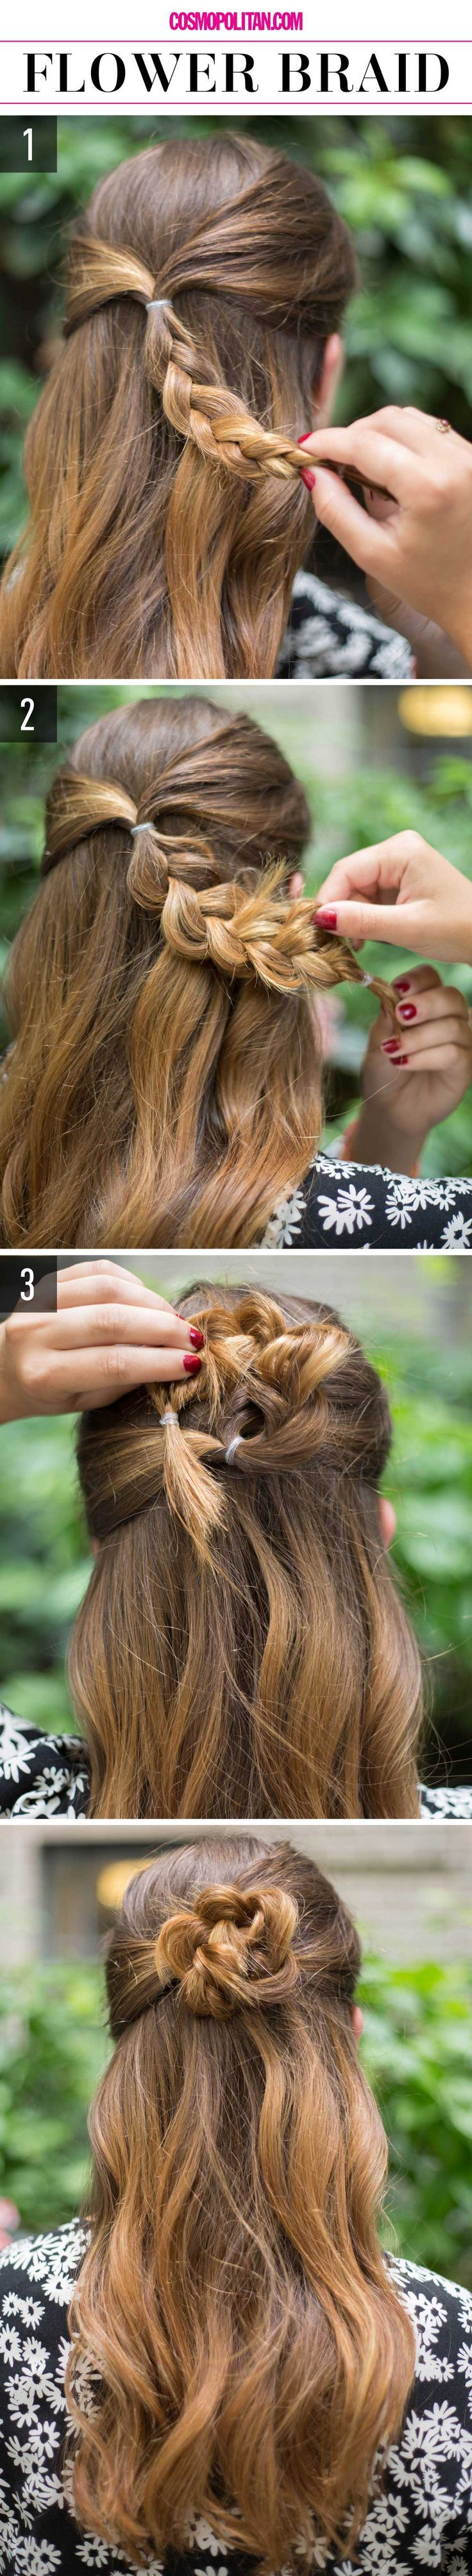 FLOWER BRAID: Create this pretty half-up and half-down look with this tutorial